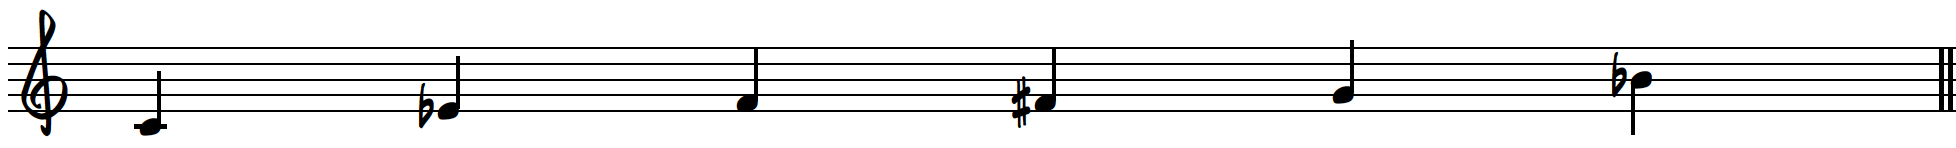 C blues scale on piano